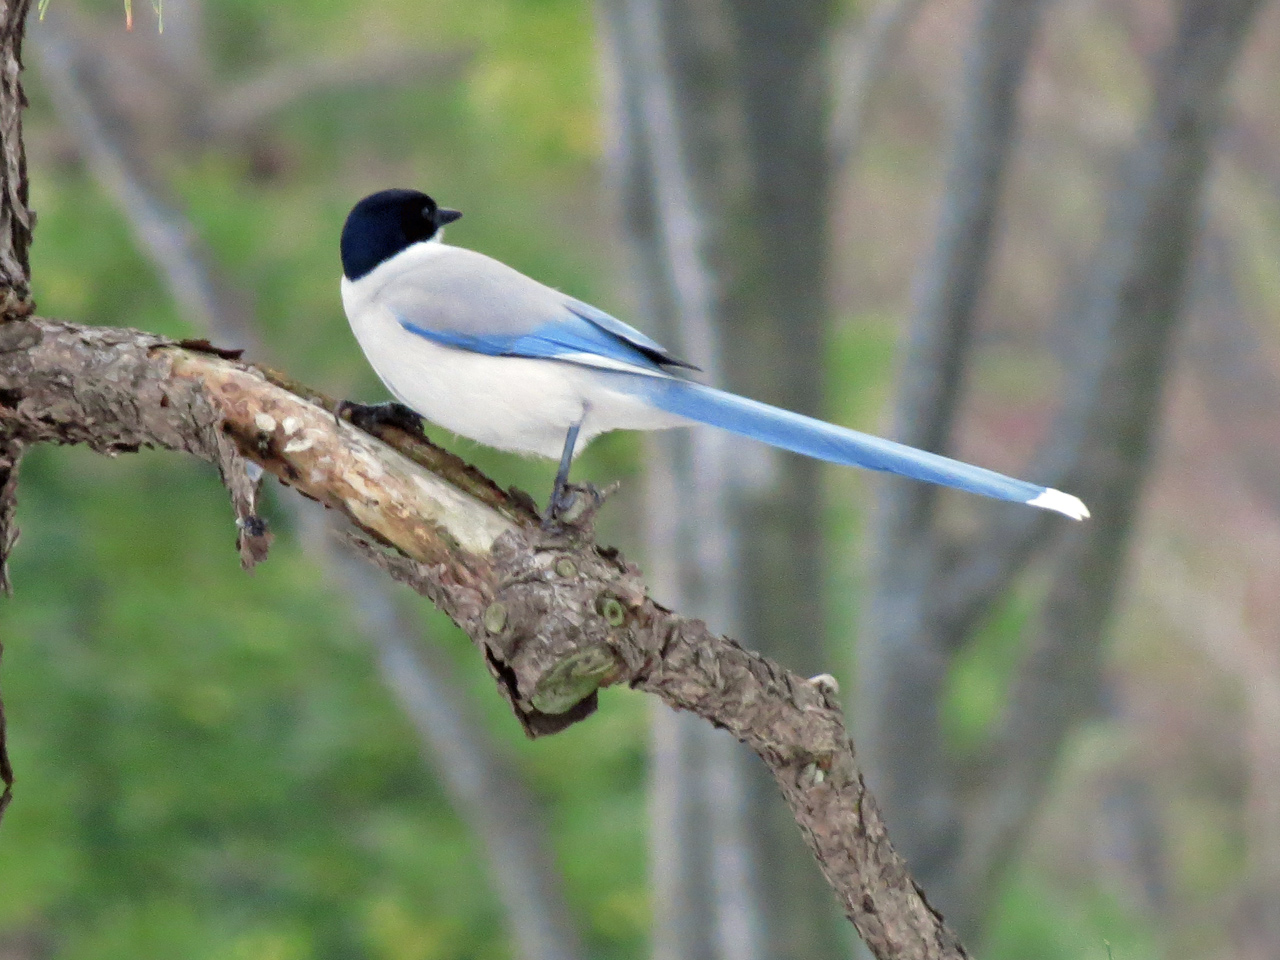 Azure-winged Magpie on the branch